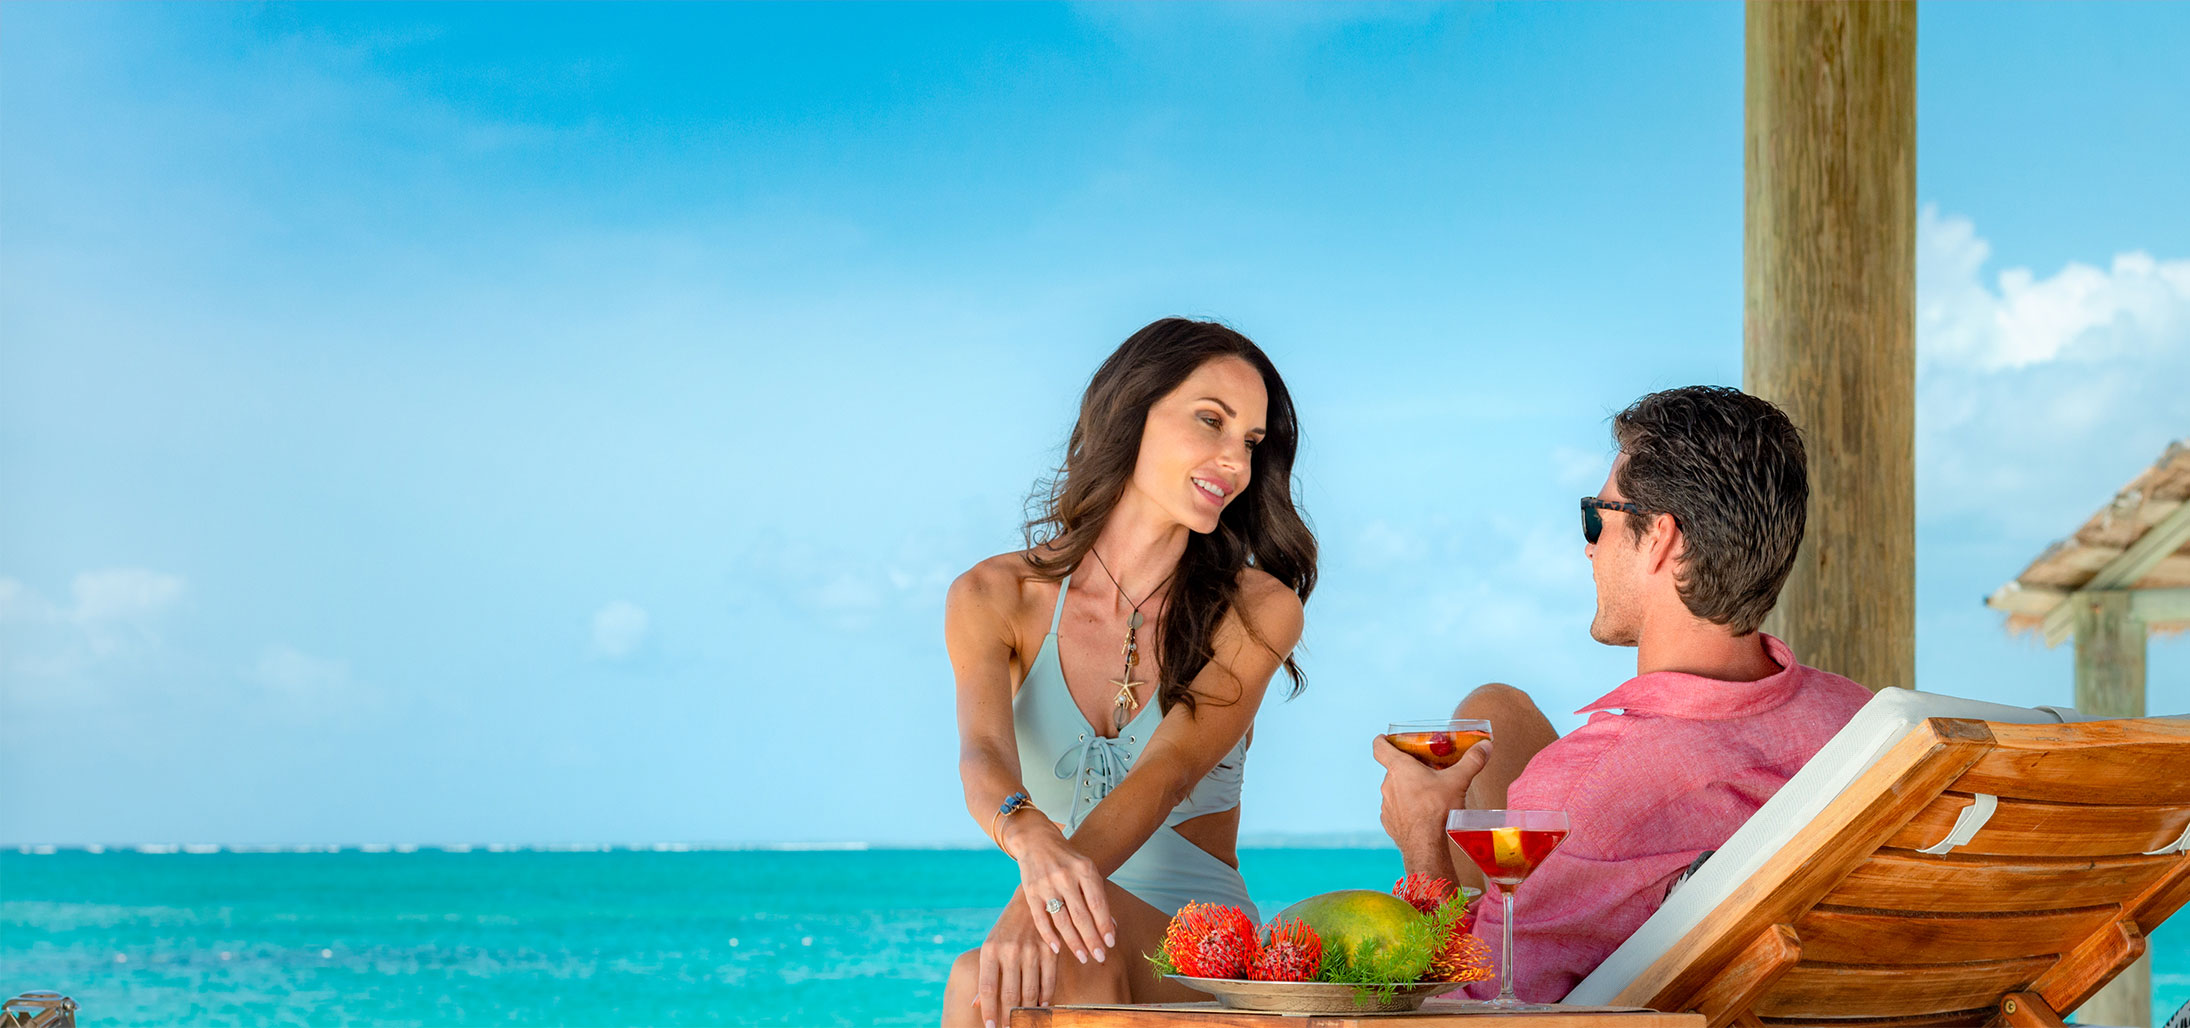 All-Inclusive Vacations & Resorts for Couples | 1-888-BEACHES